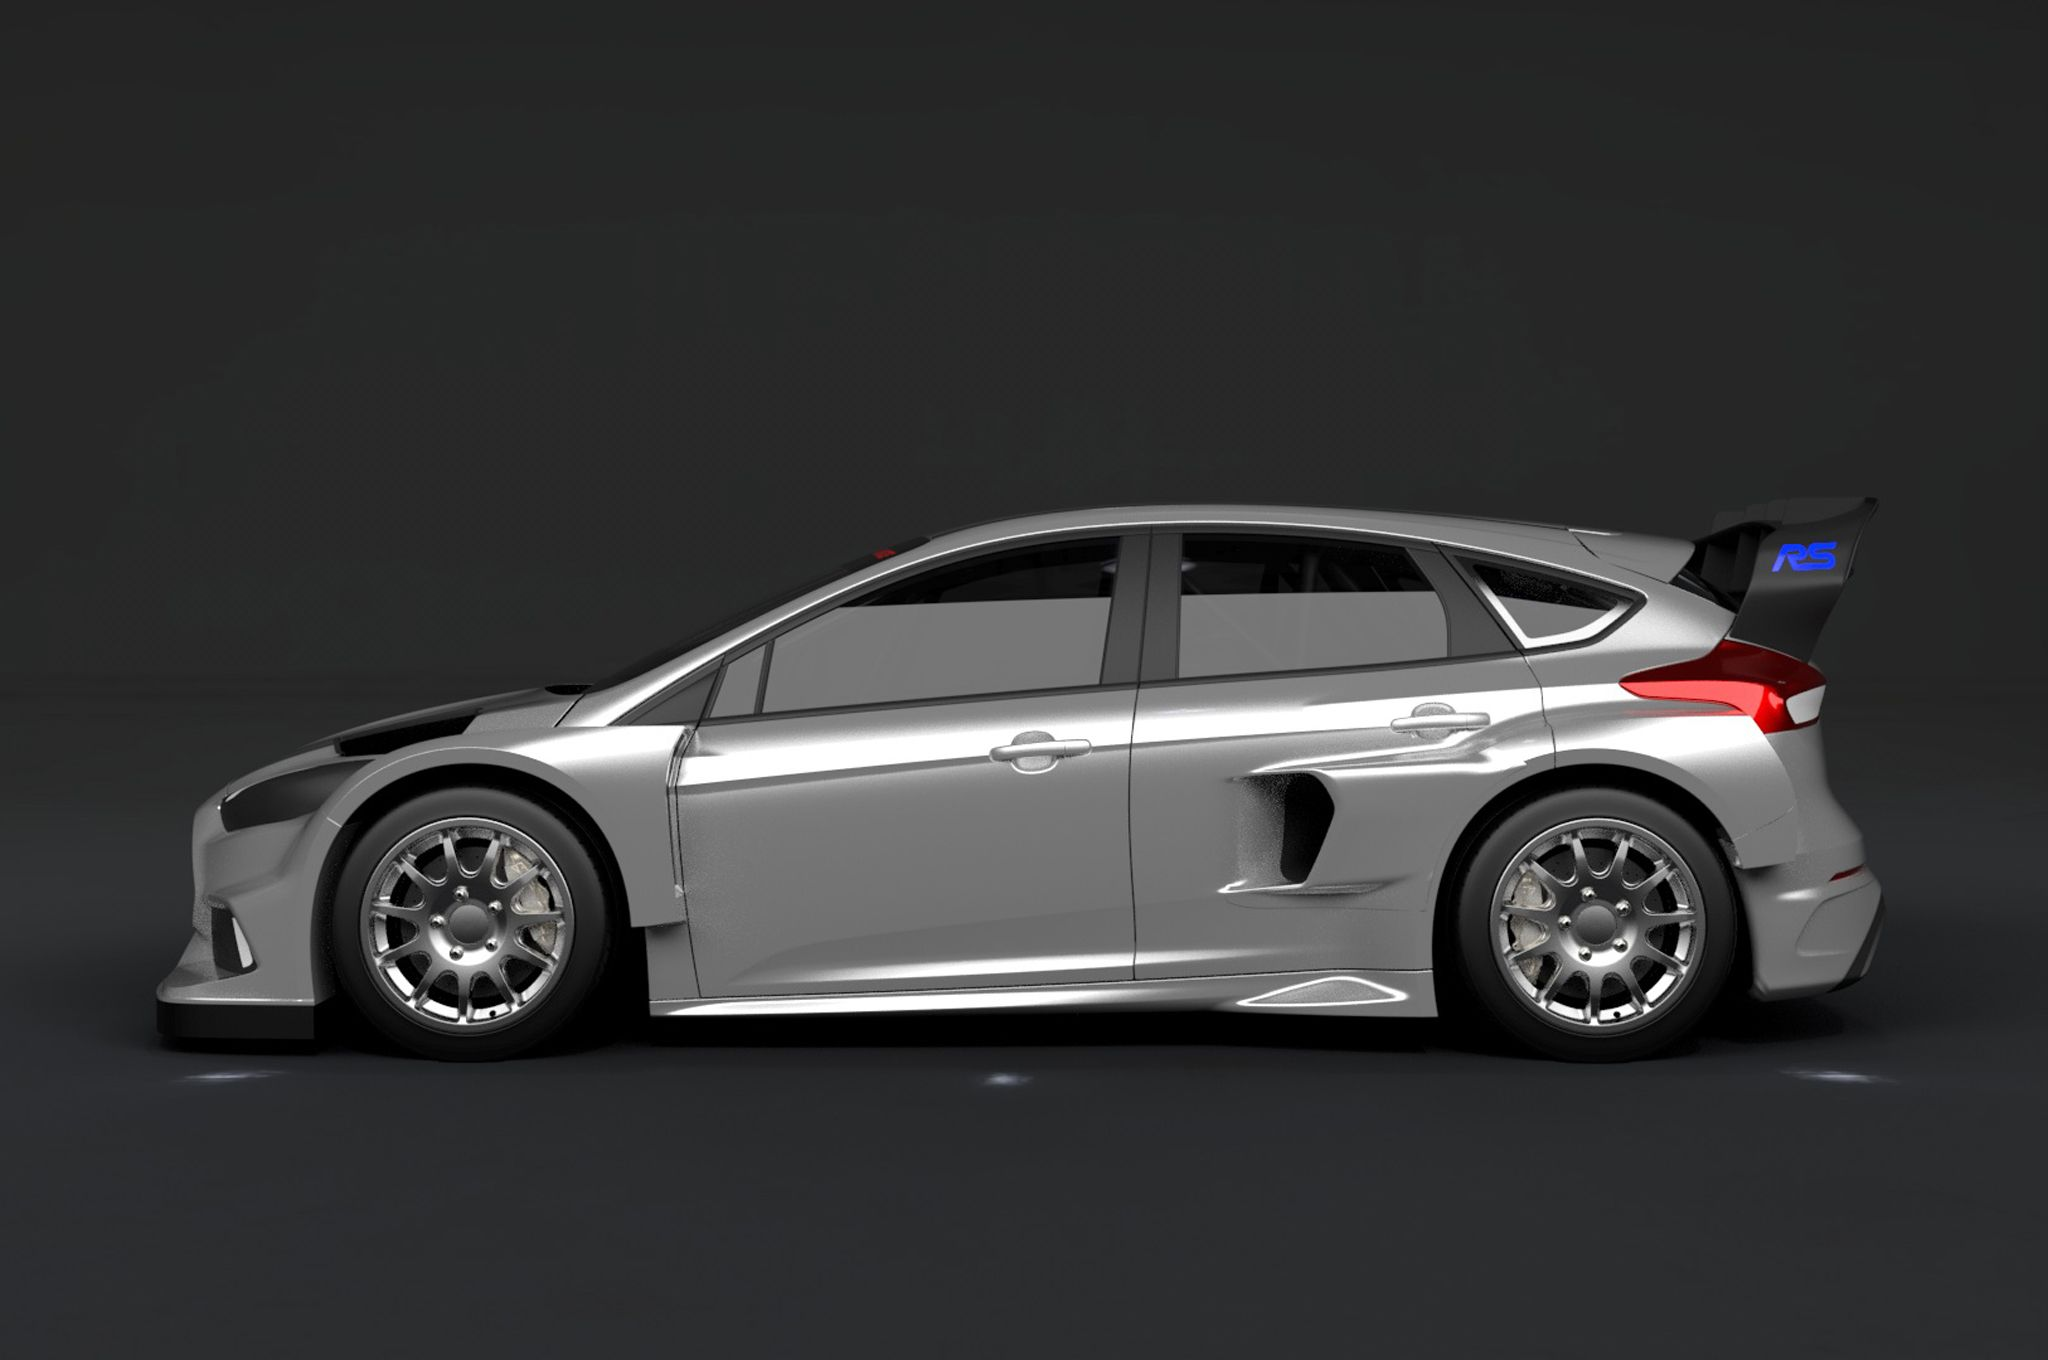 word-rallycross-championship-ford-focus-rs-race-car-side-profile.jpg